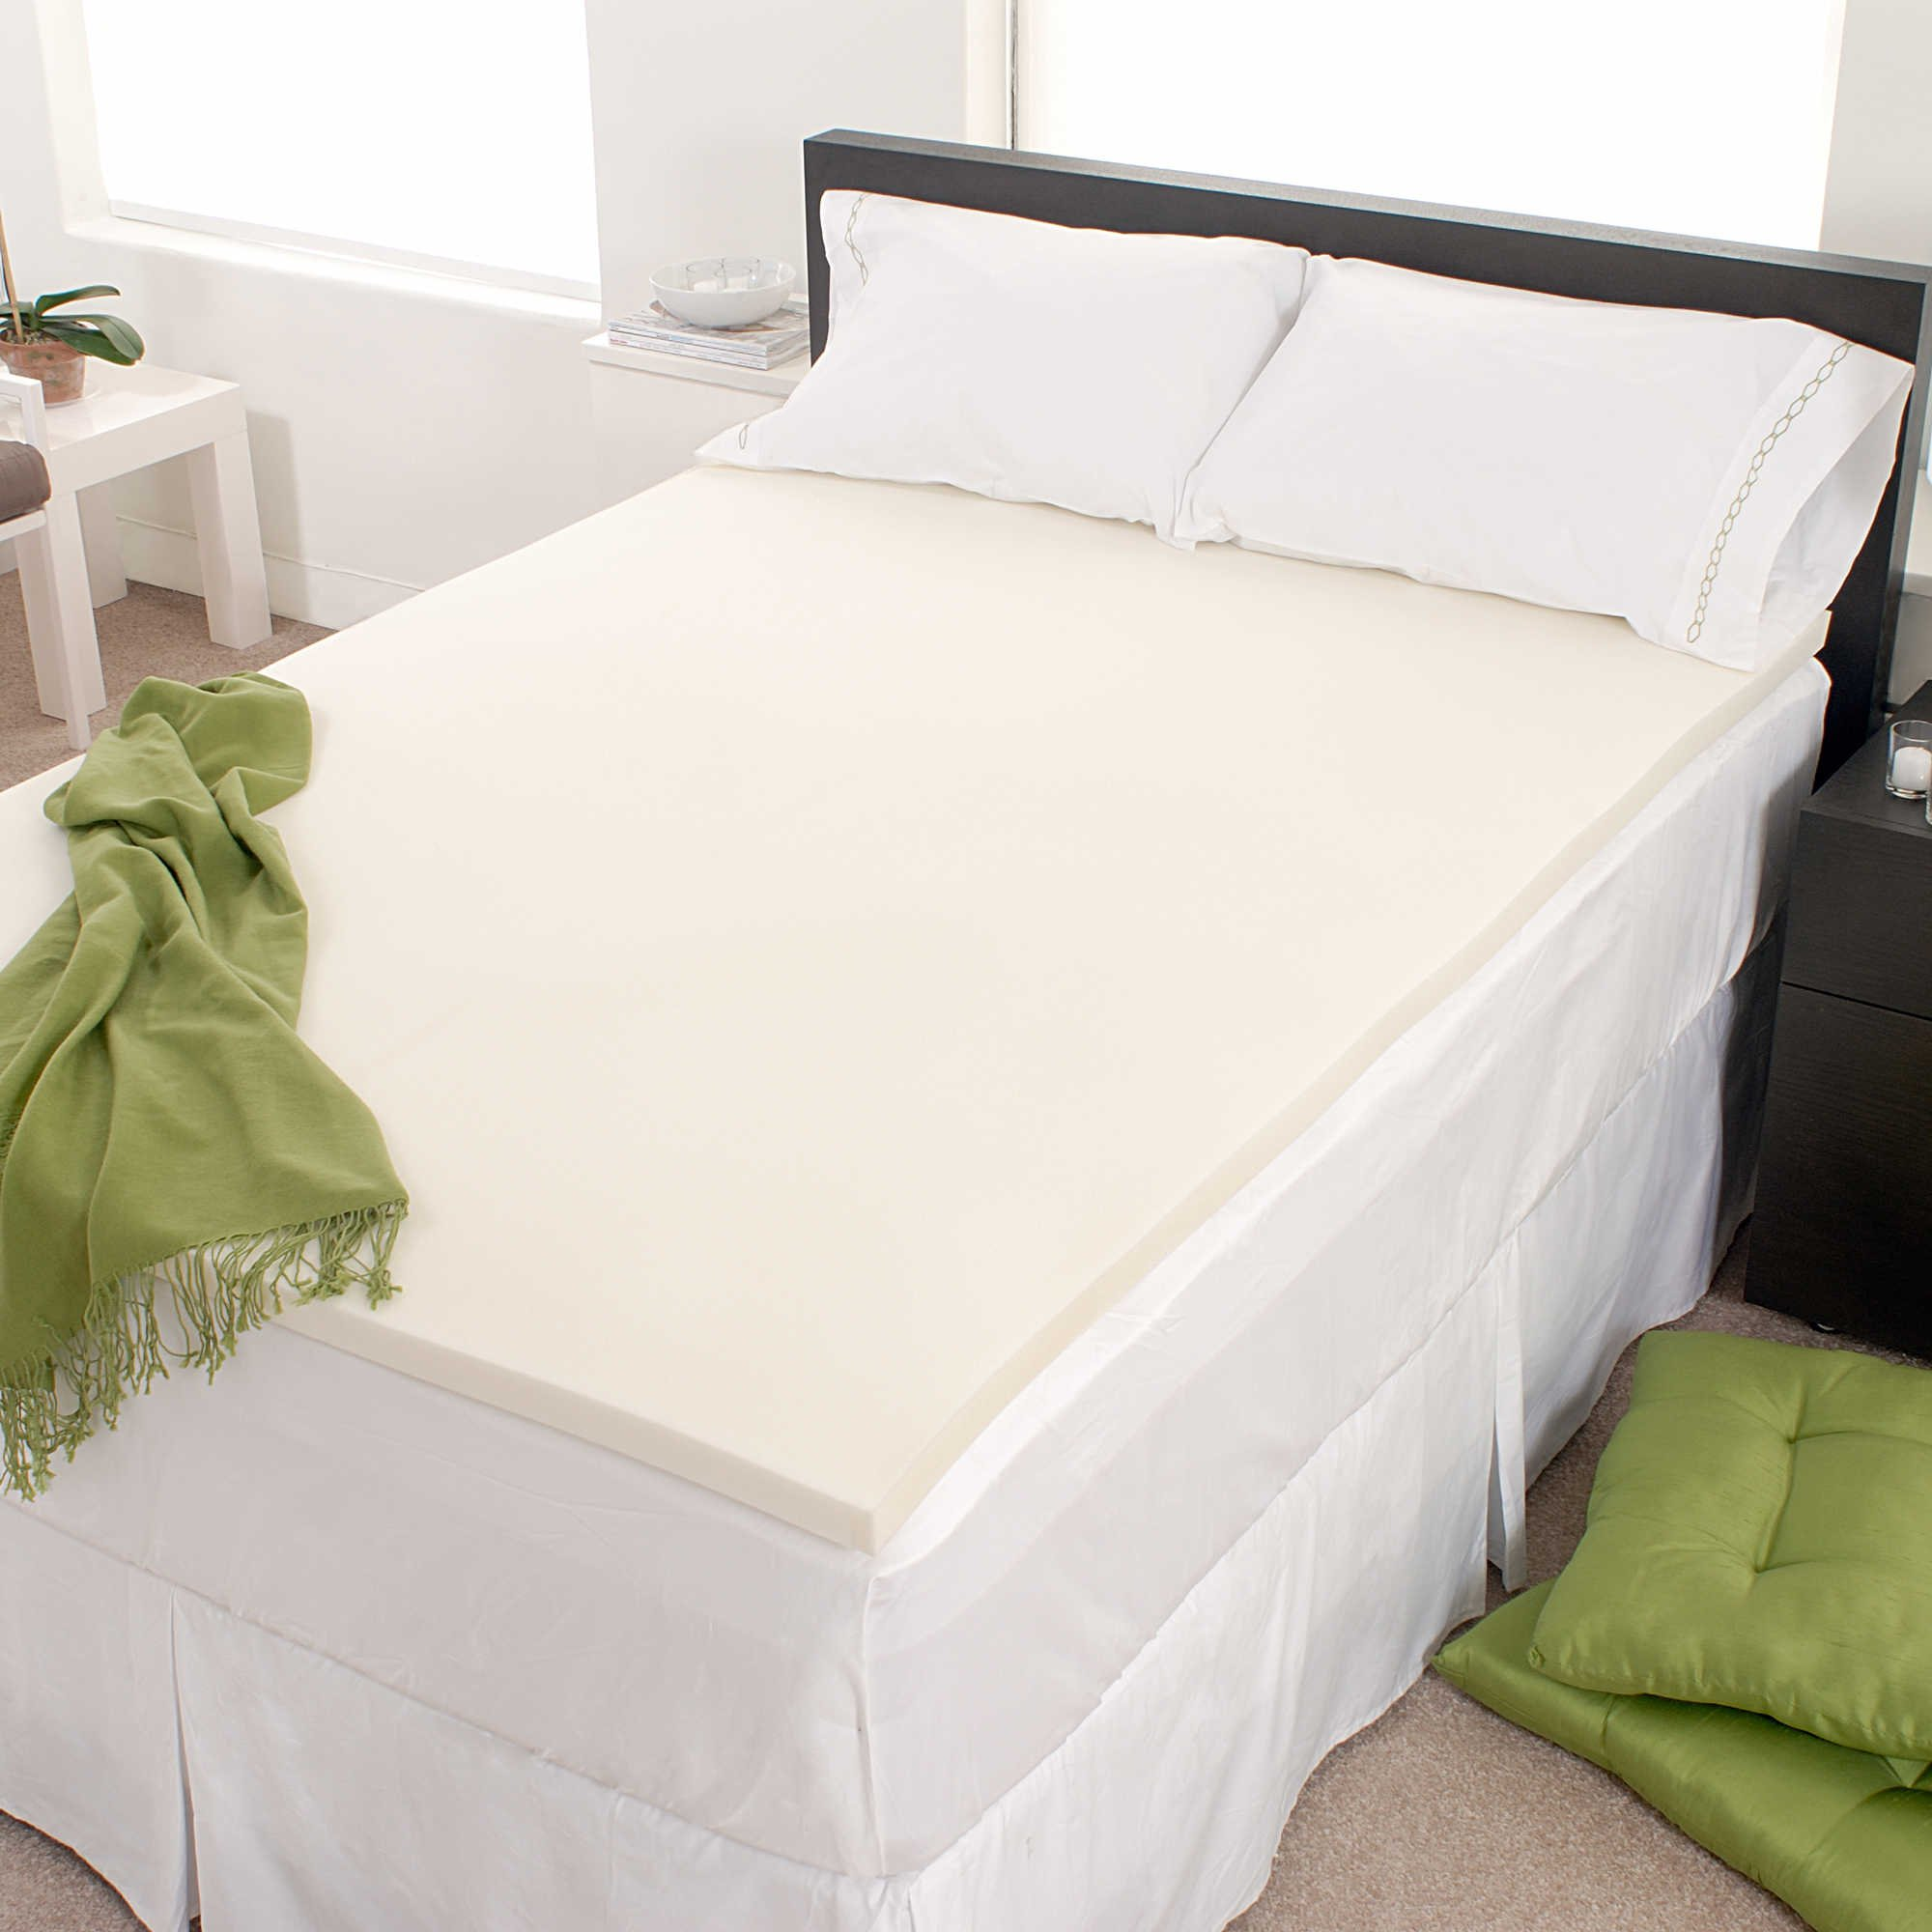 FoamRush 4'' Thick Short Queen Size Memory Foam Pad Mattress Topper Made in USA